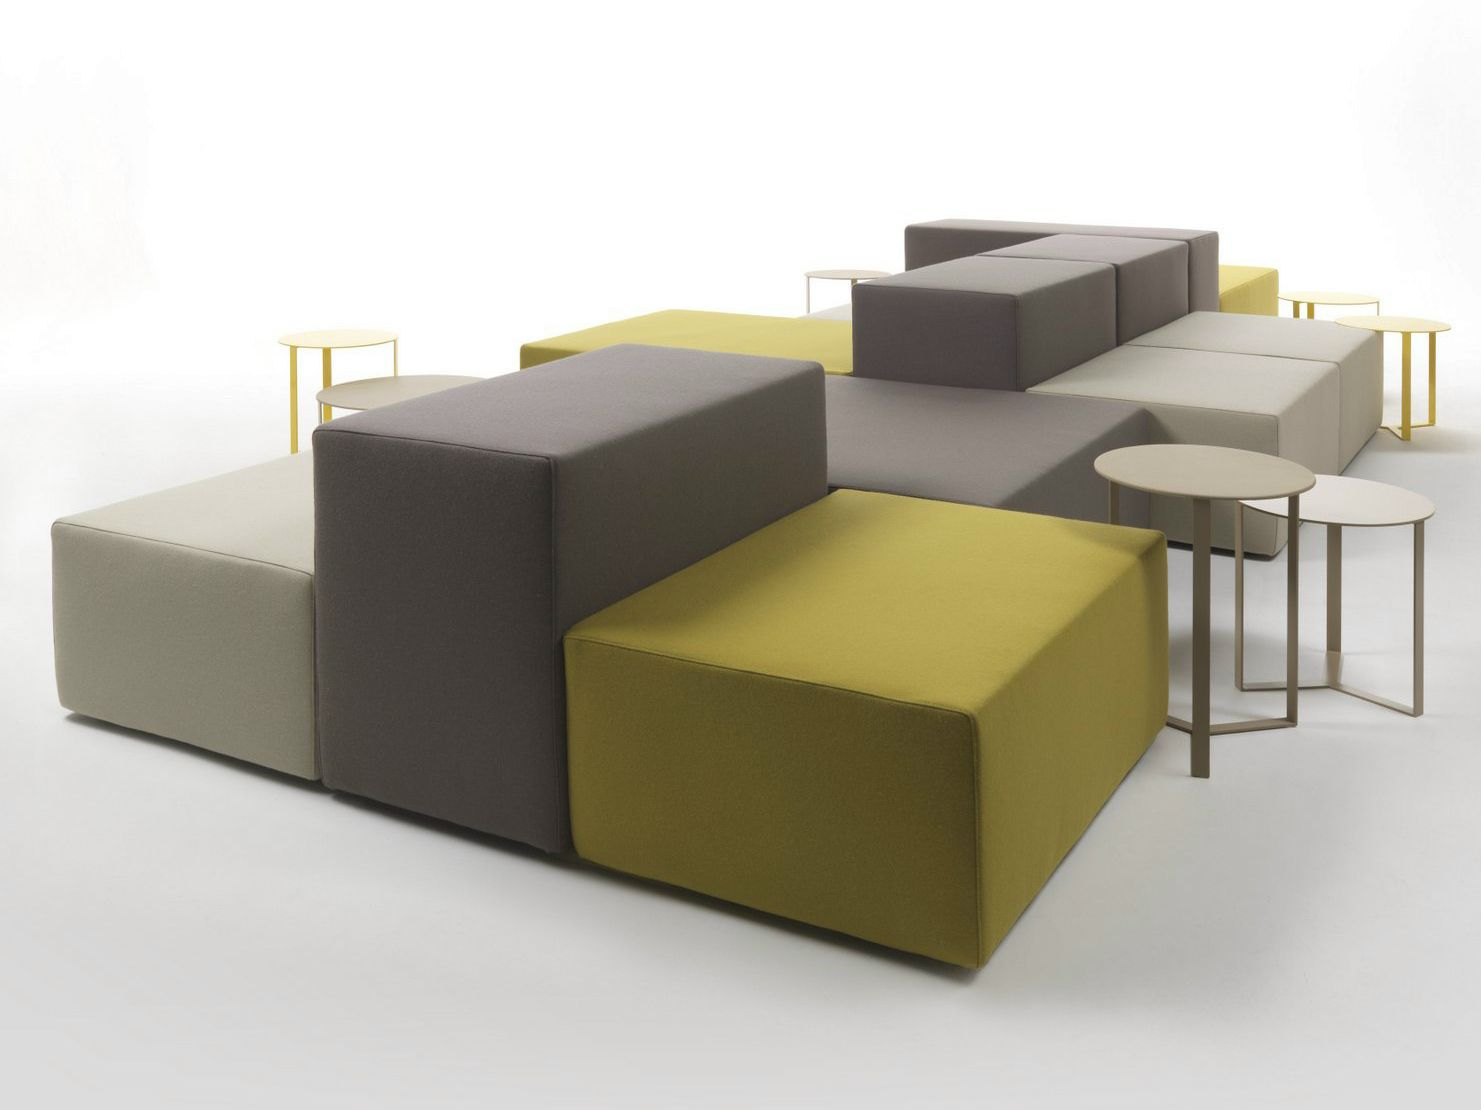 canap composable modulable lounge collection lounge by giulio marelli italia design m. Black Bedroom Furniture Sets. Home Design Ideas